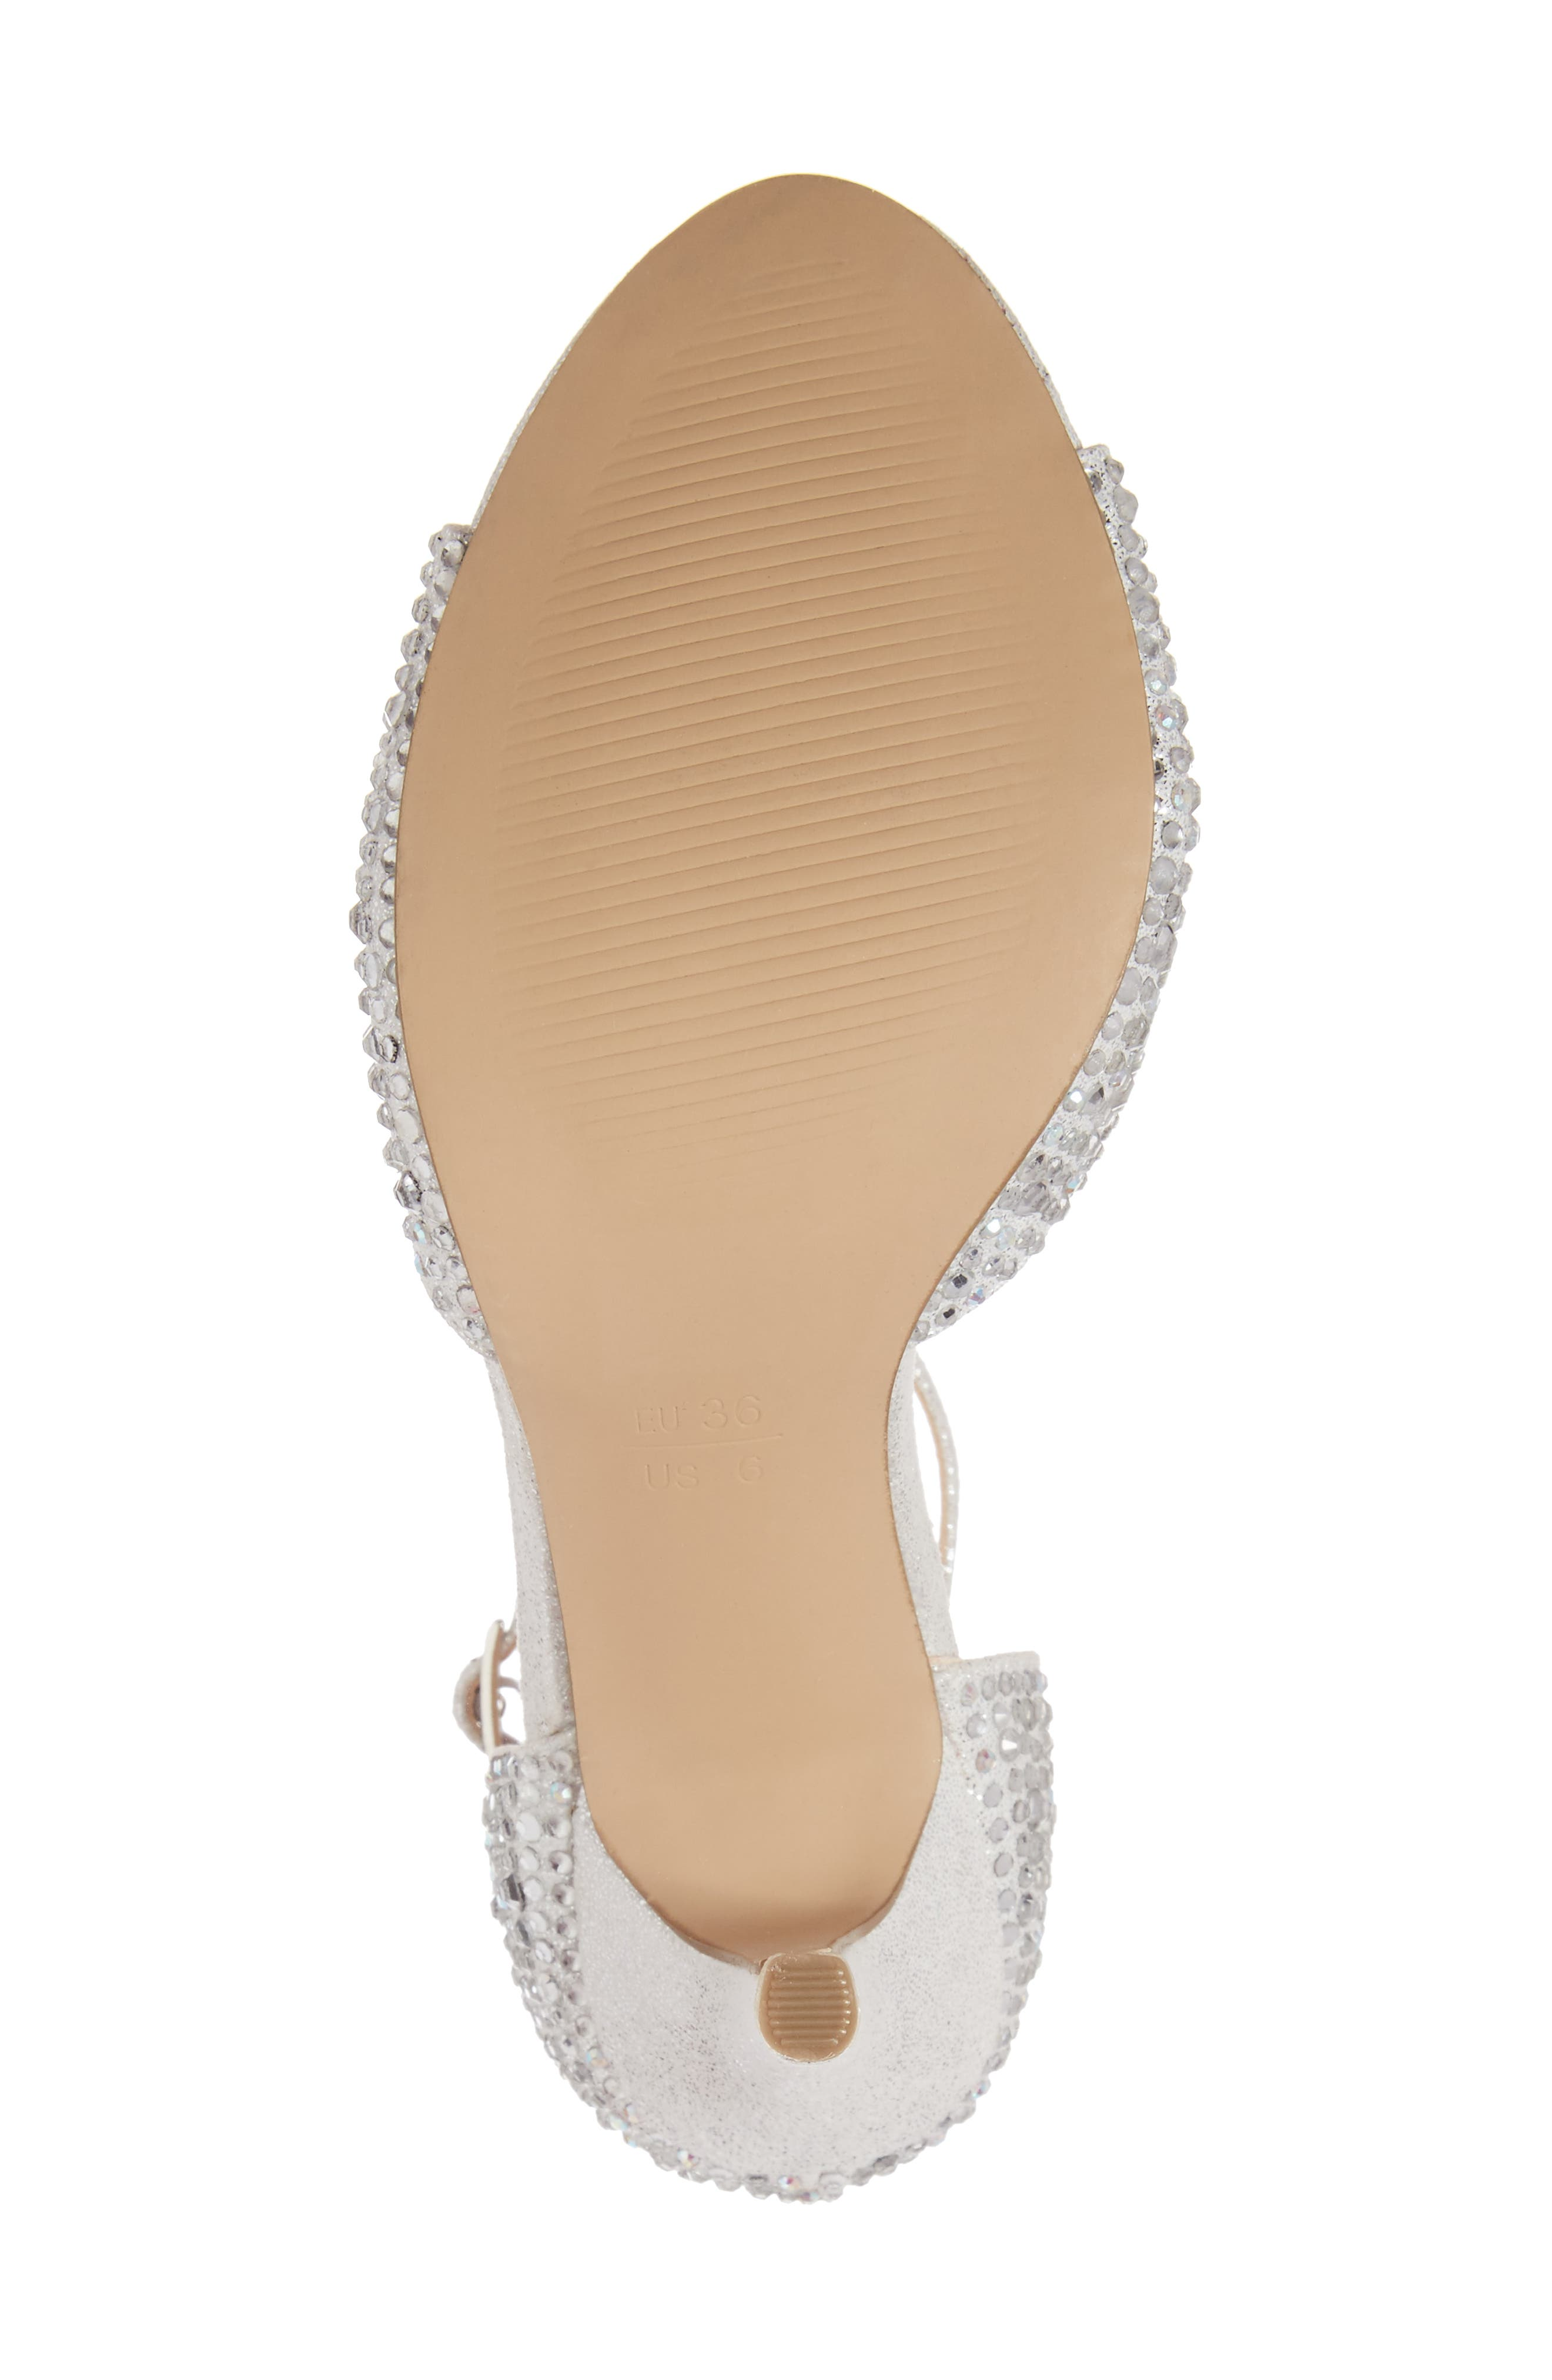 Mira Embellished Glitter Sandal,                             Alternate thumbnail 6, color,